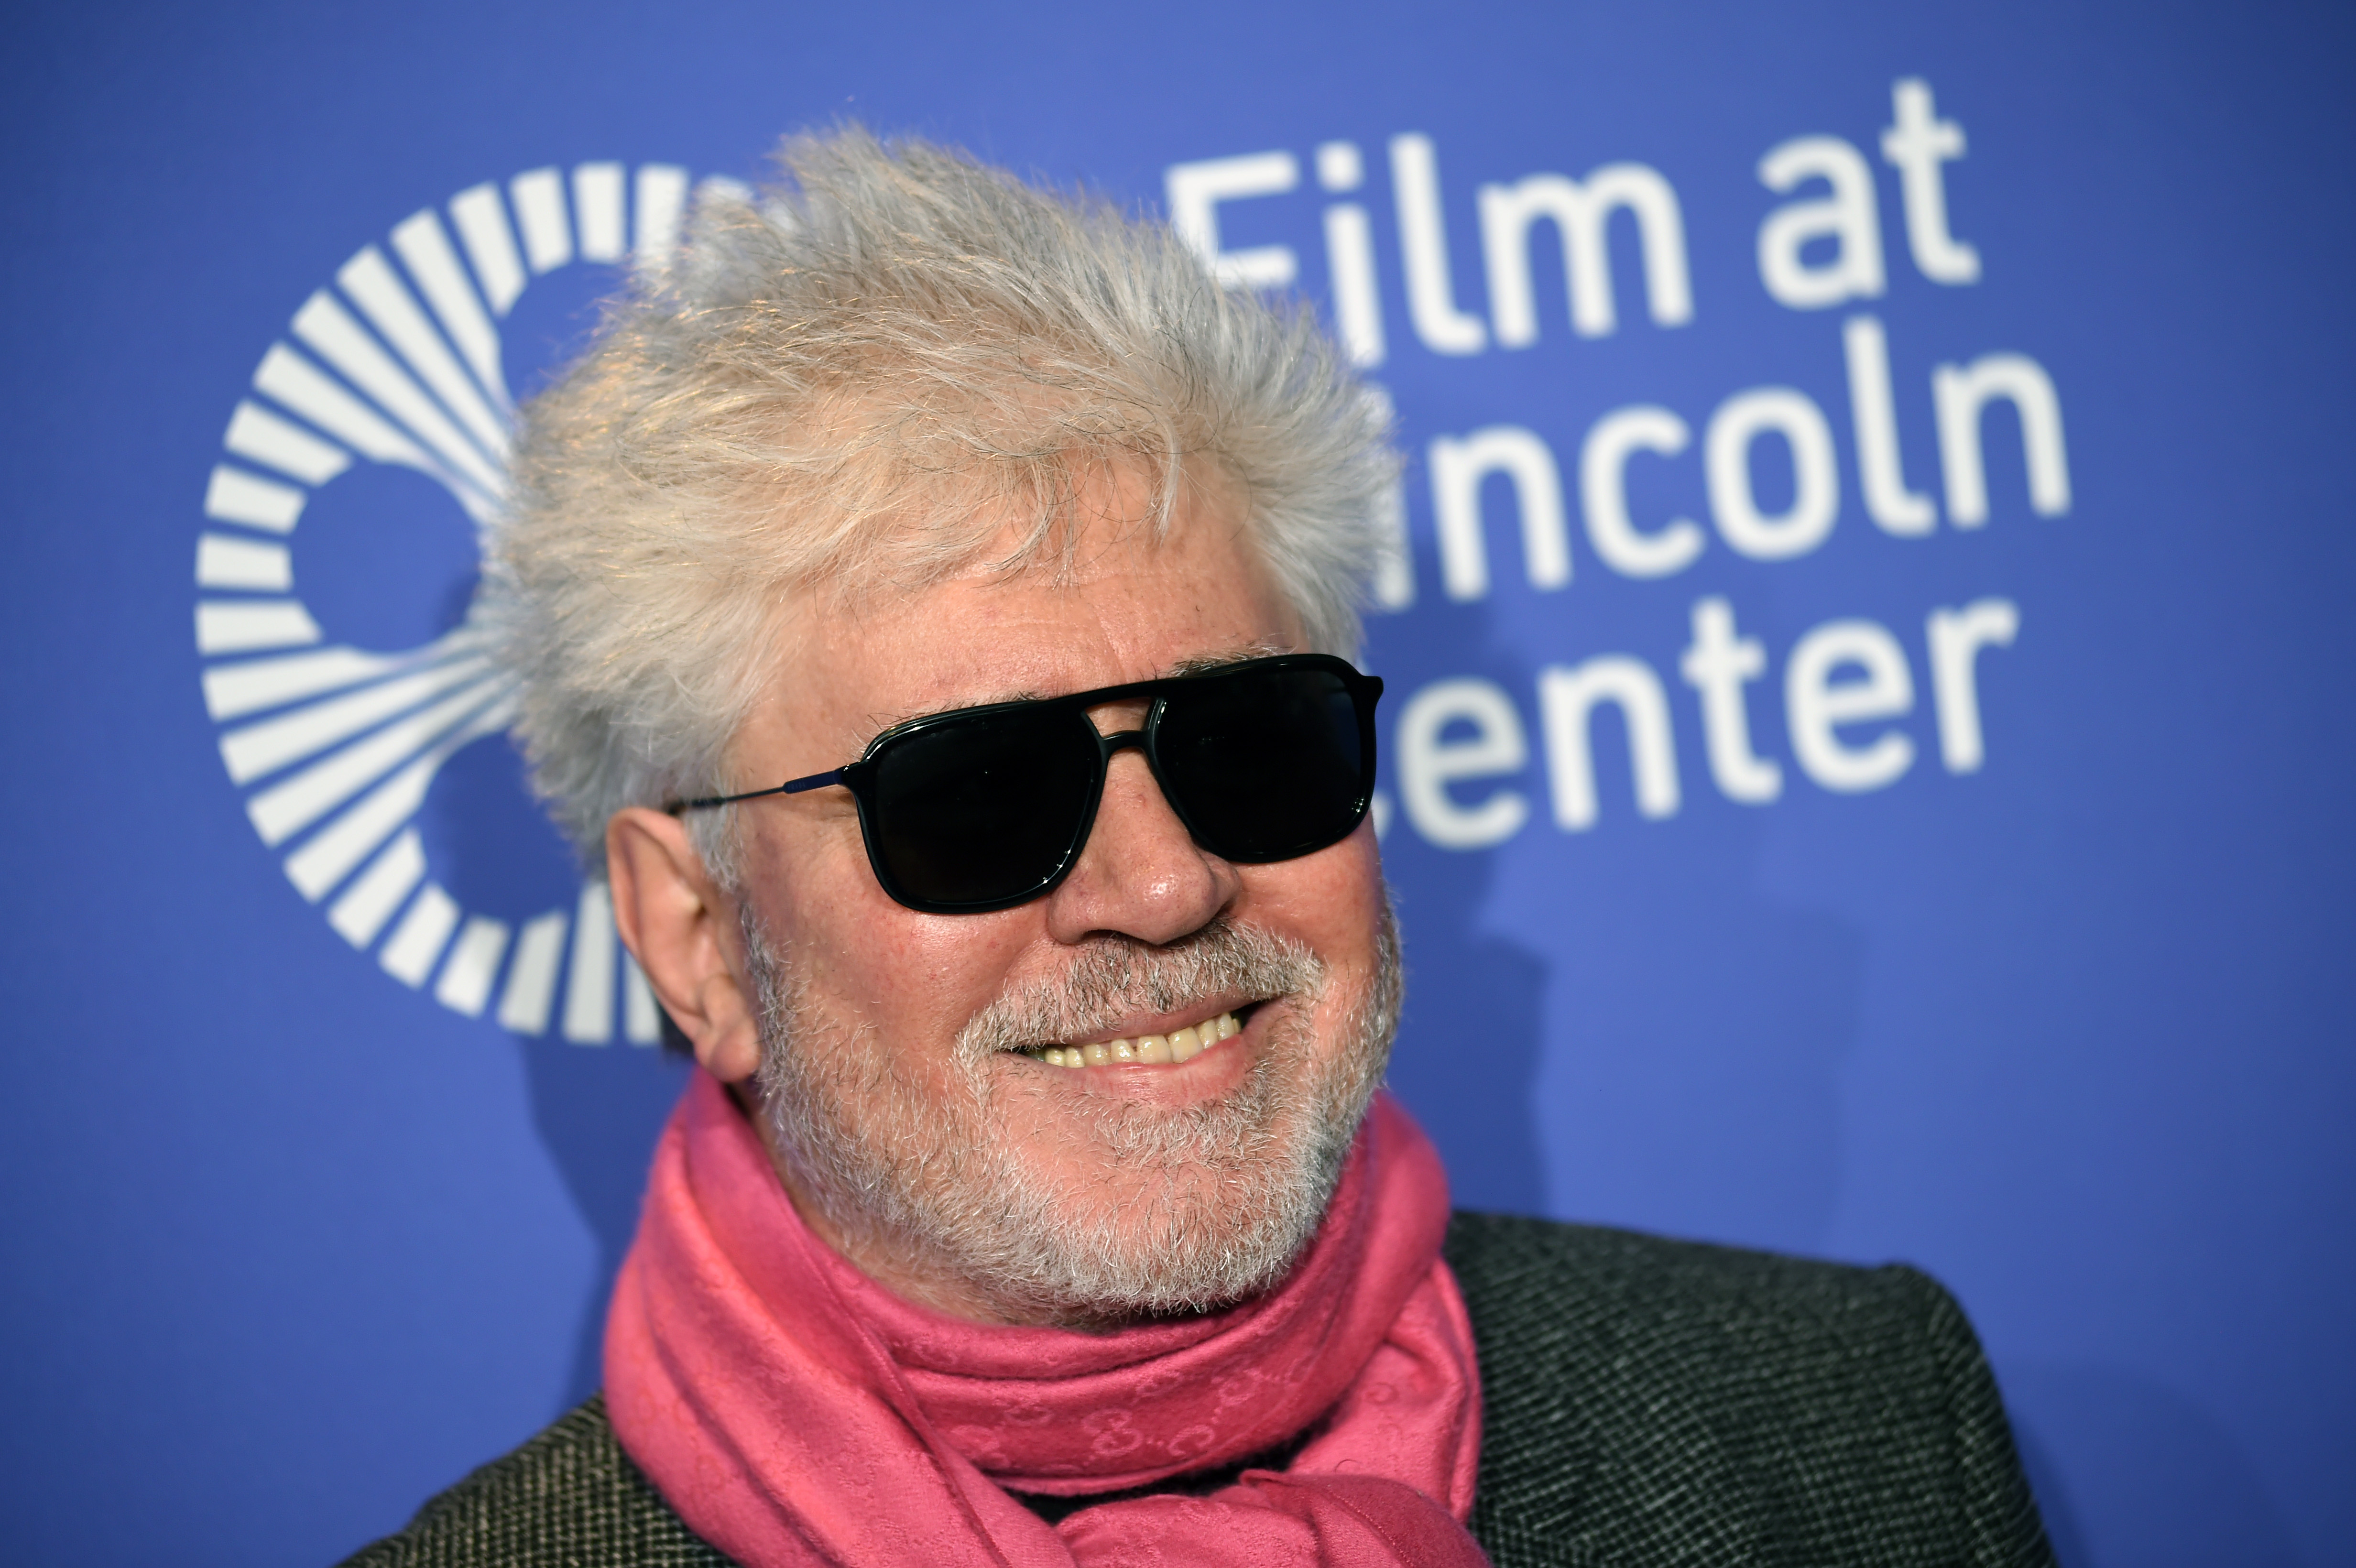 Pedro Almodóvar Wants Sexier Marvel Movies and Superhero Films: 'They Are Neutered'